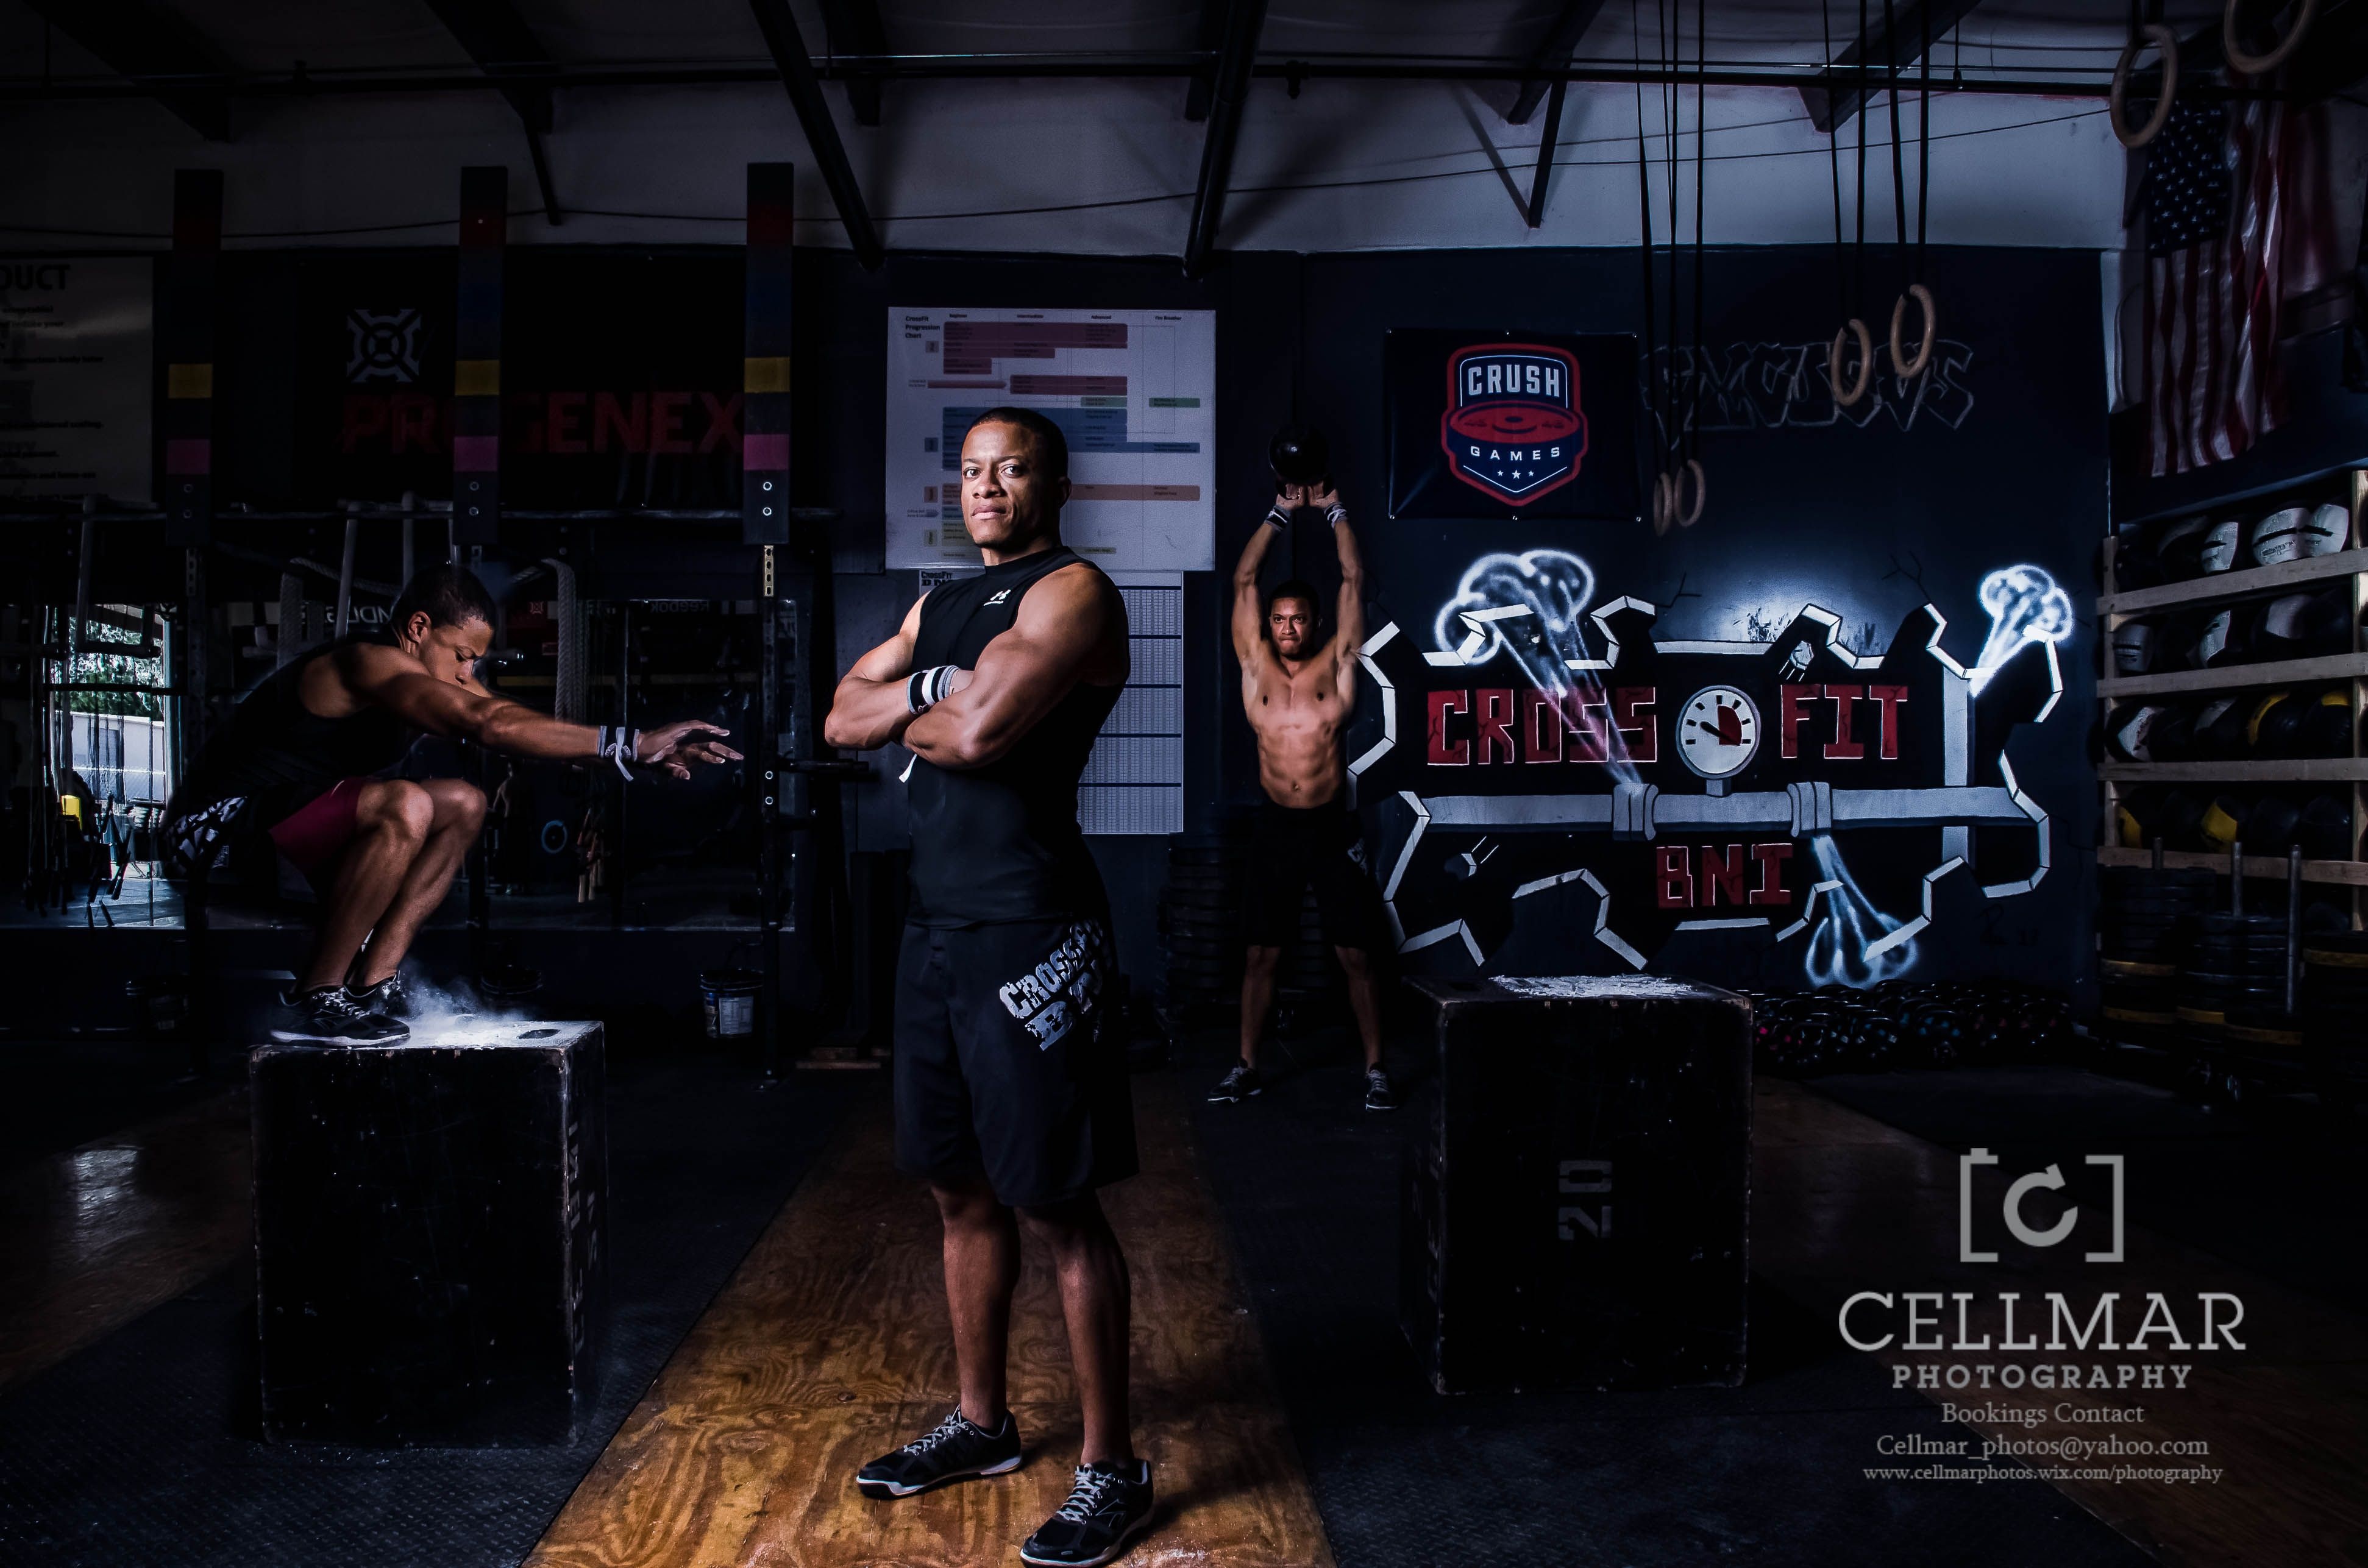 Crossfit Photography....who's running your box!